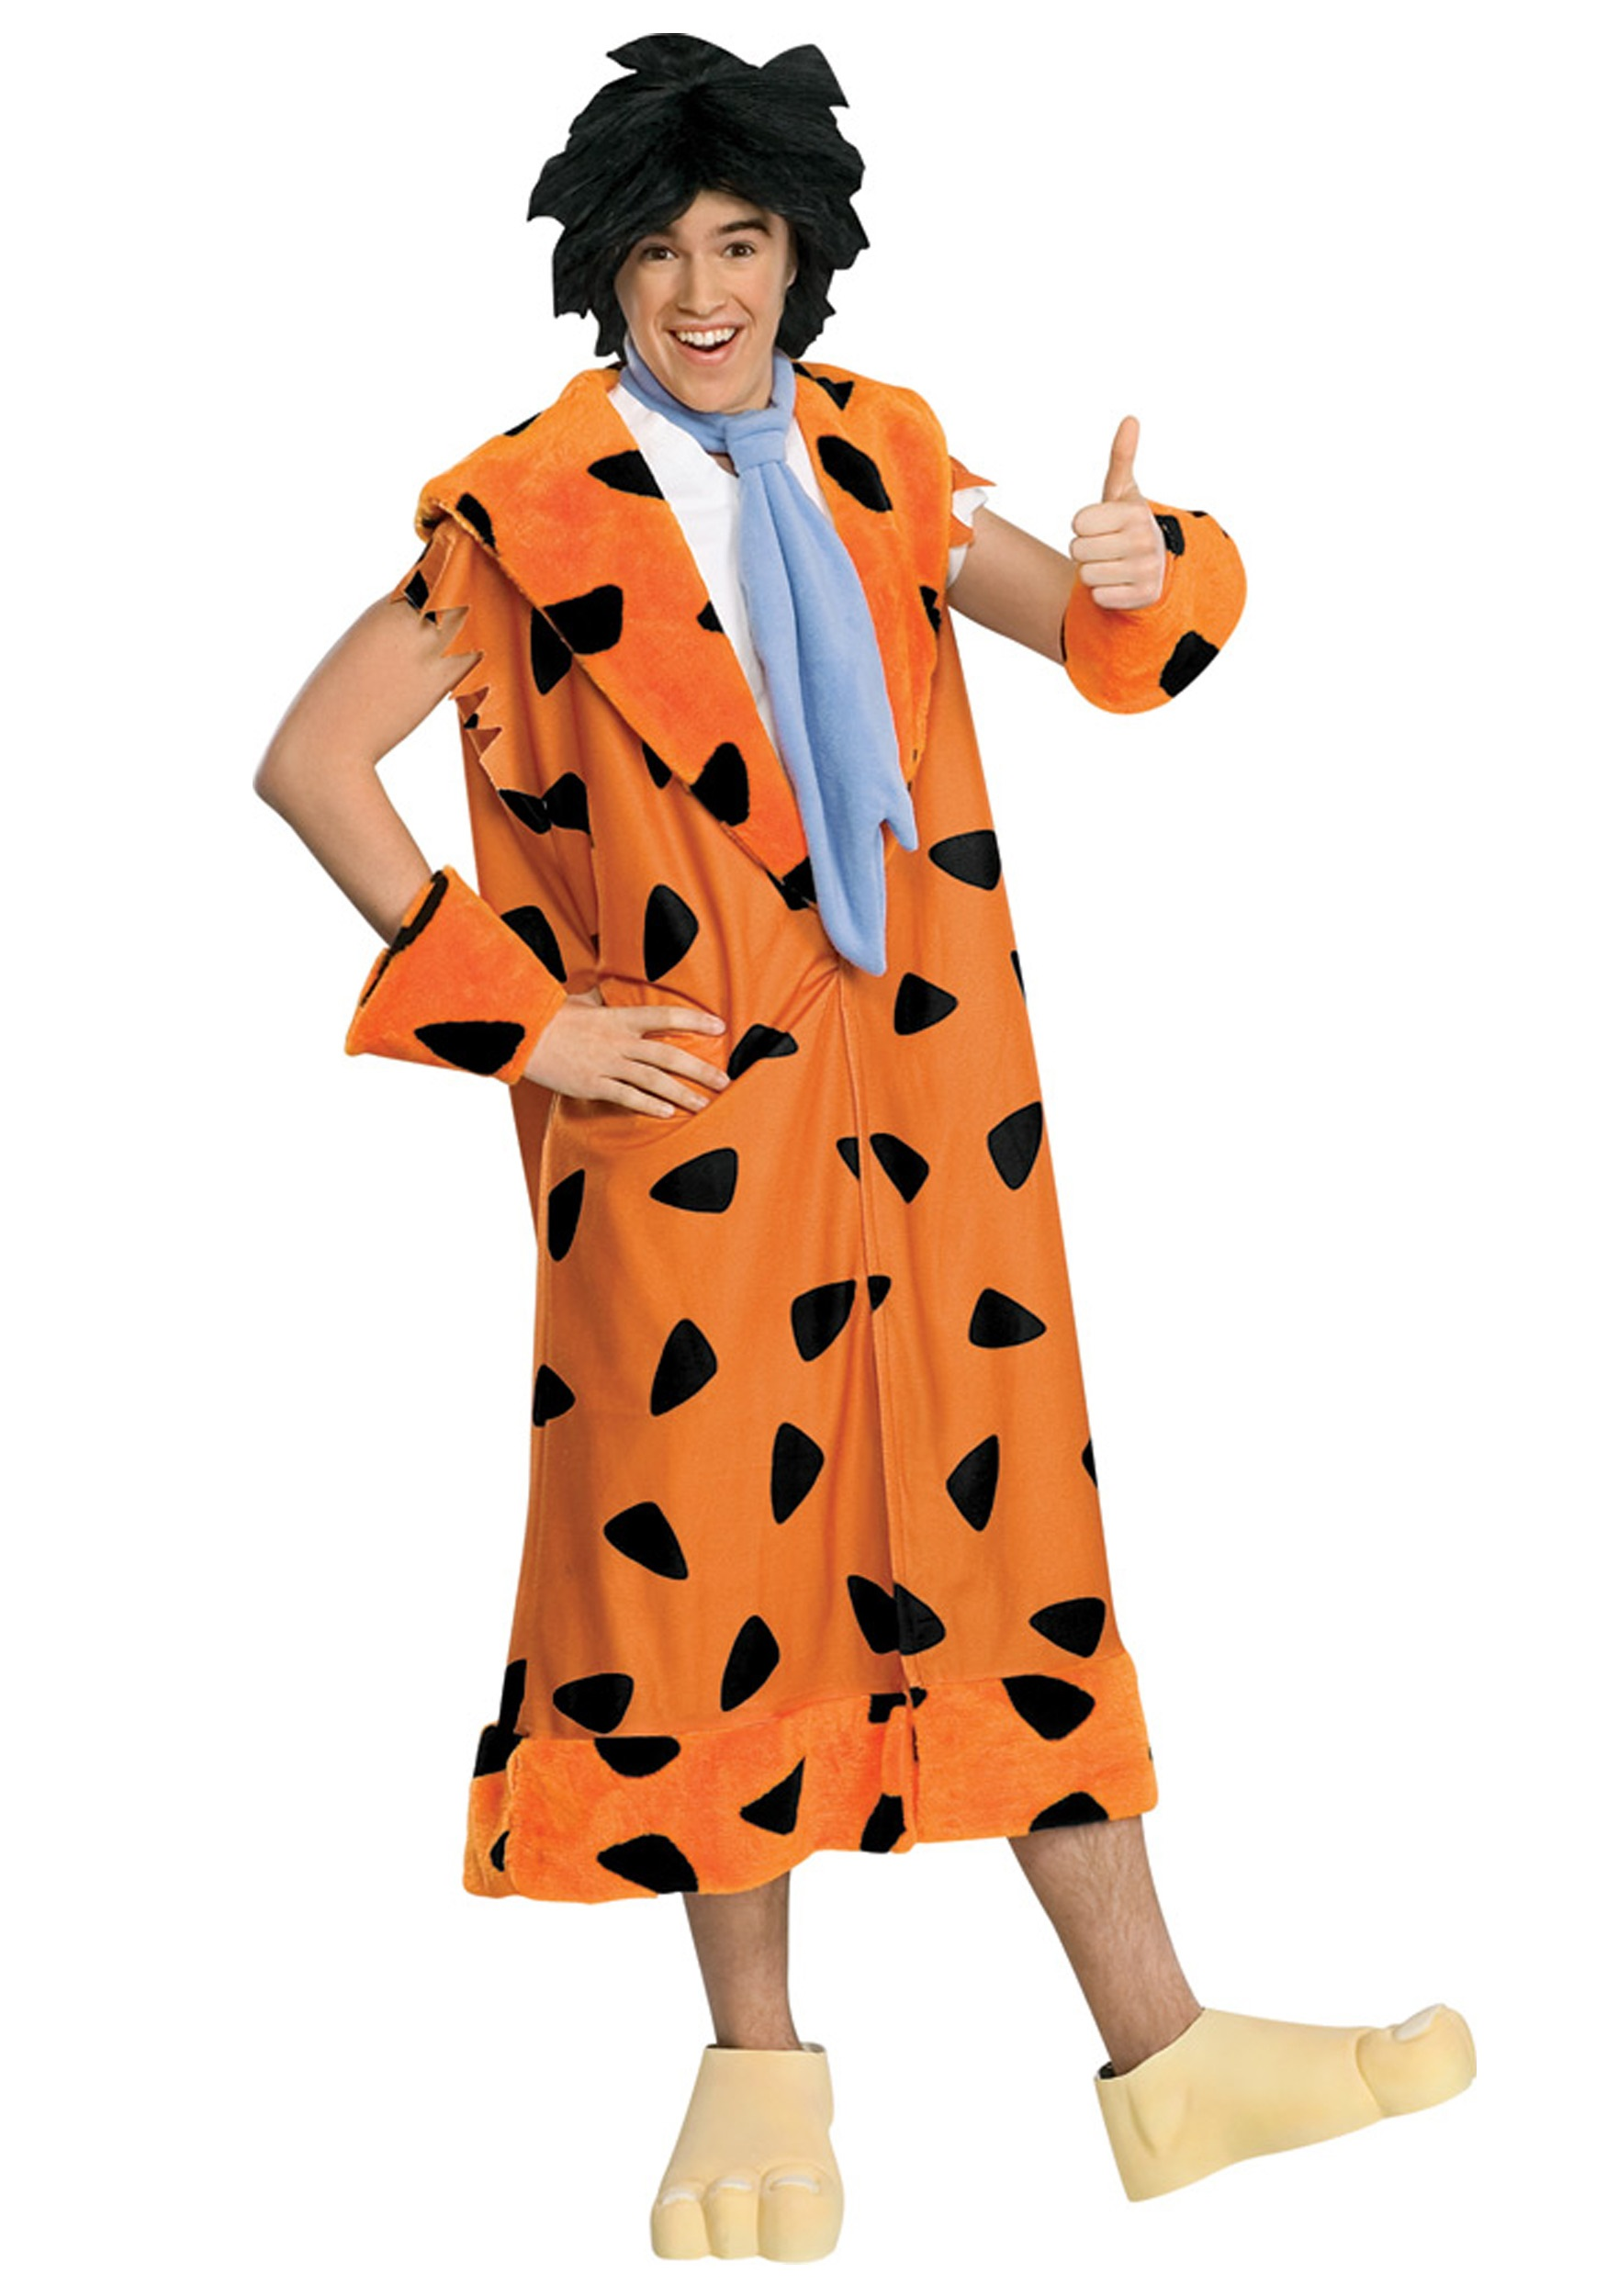 Agree, Adult flintstone costume your